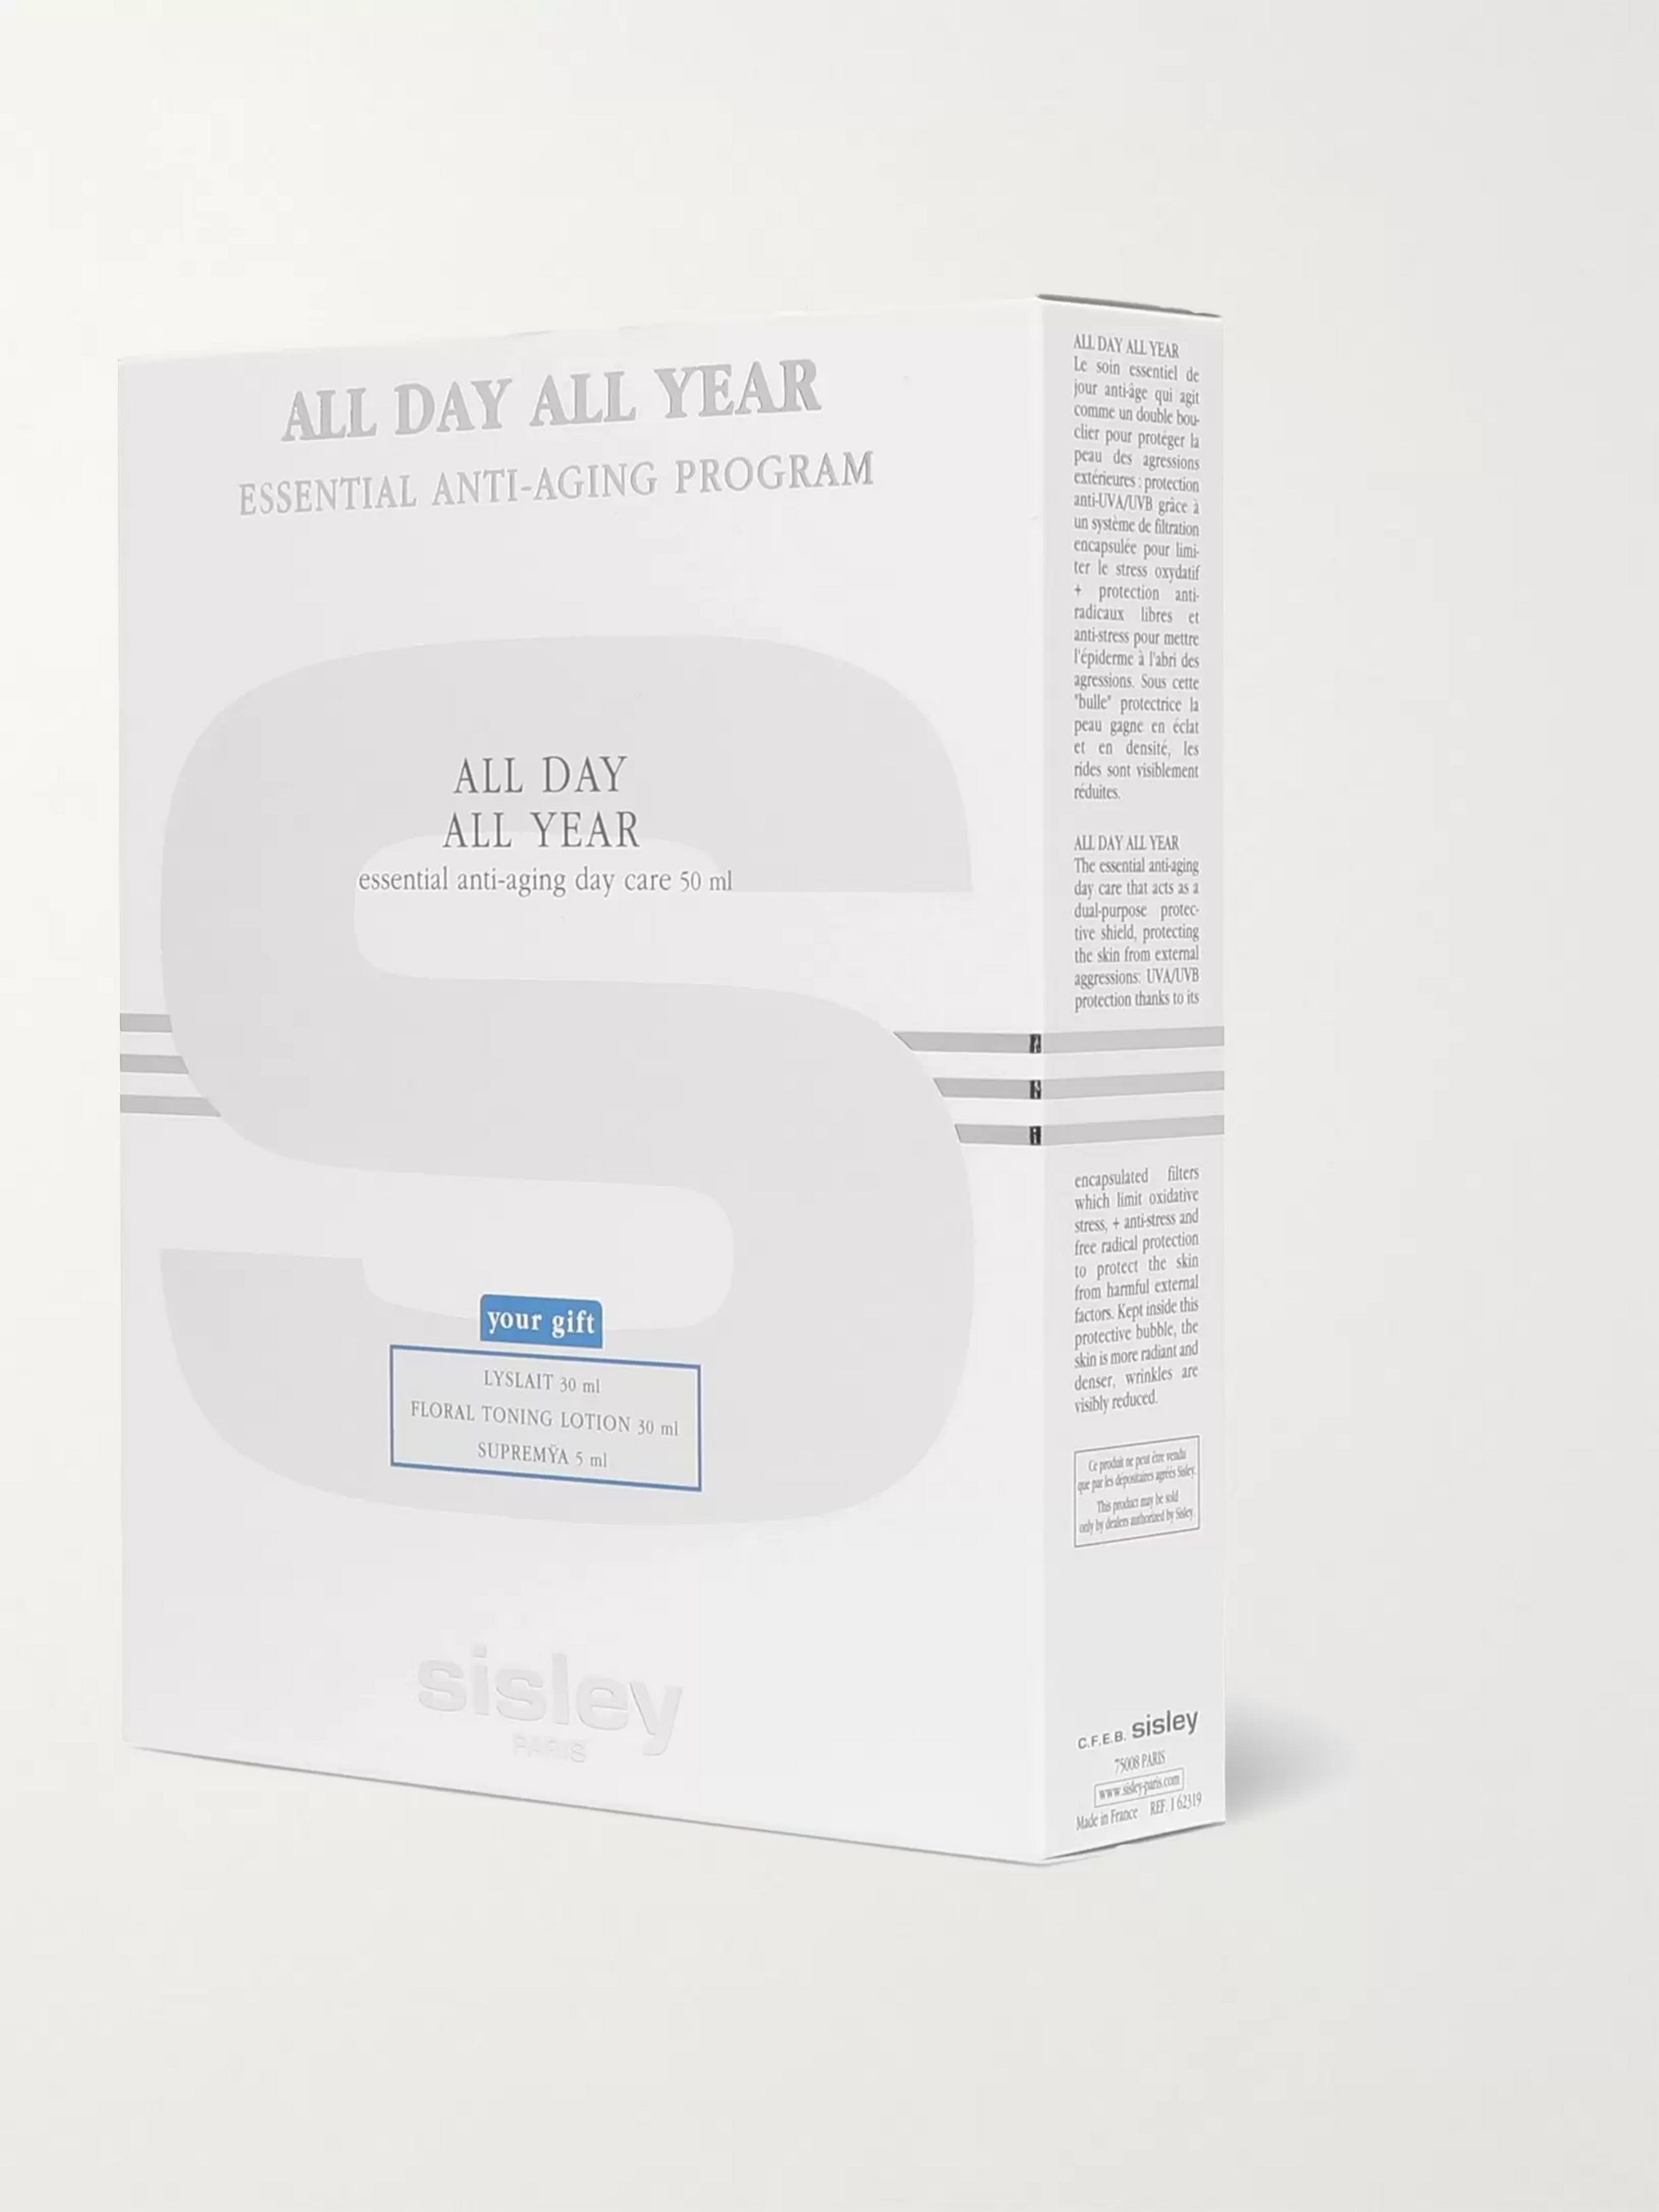 Sisley All Day All Year Essential Anti-Aging Programme